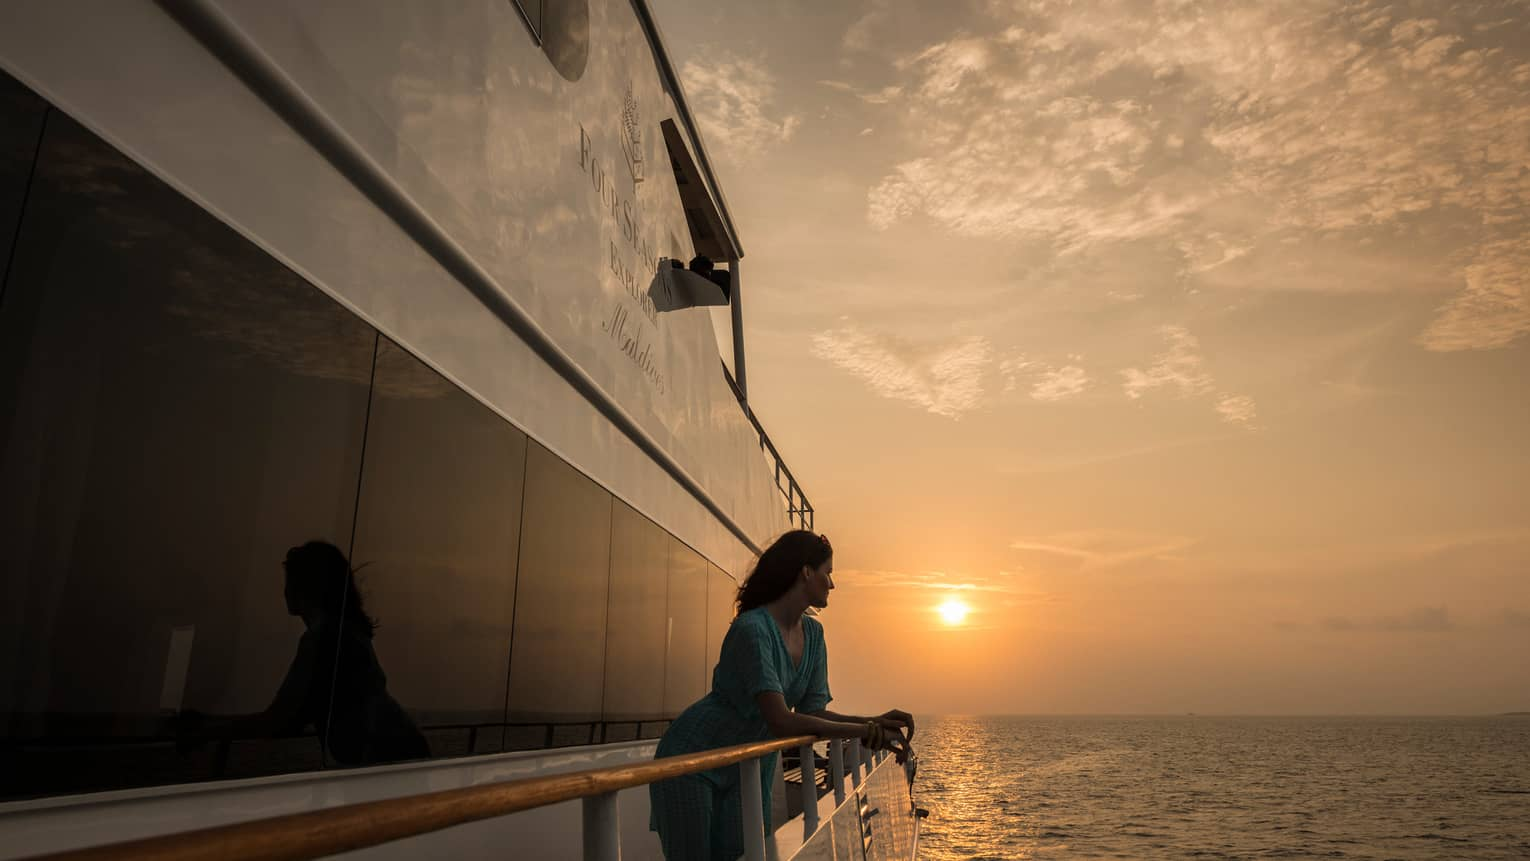 Woman stands at side of catamaran, looks out over water at sunset